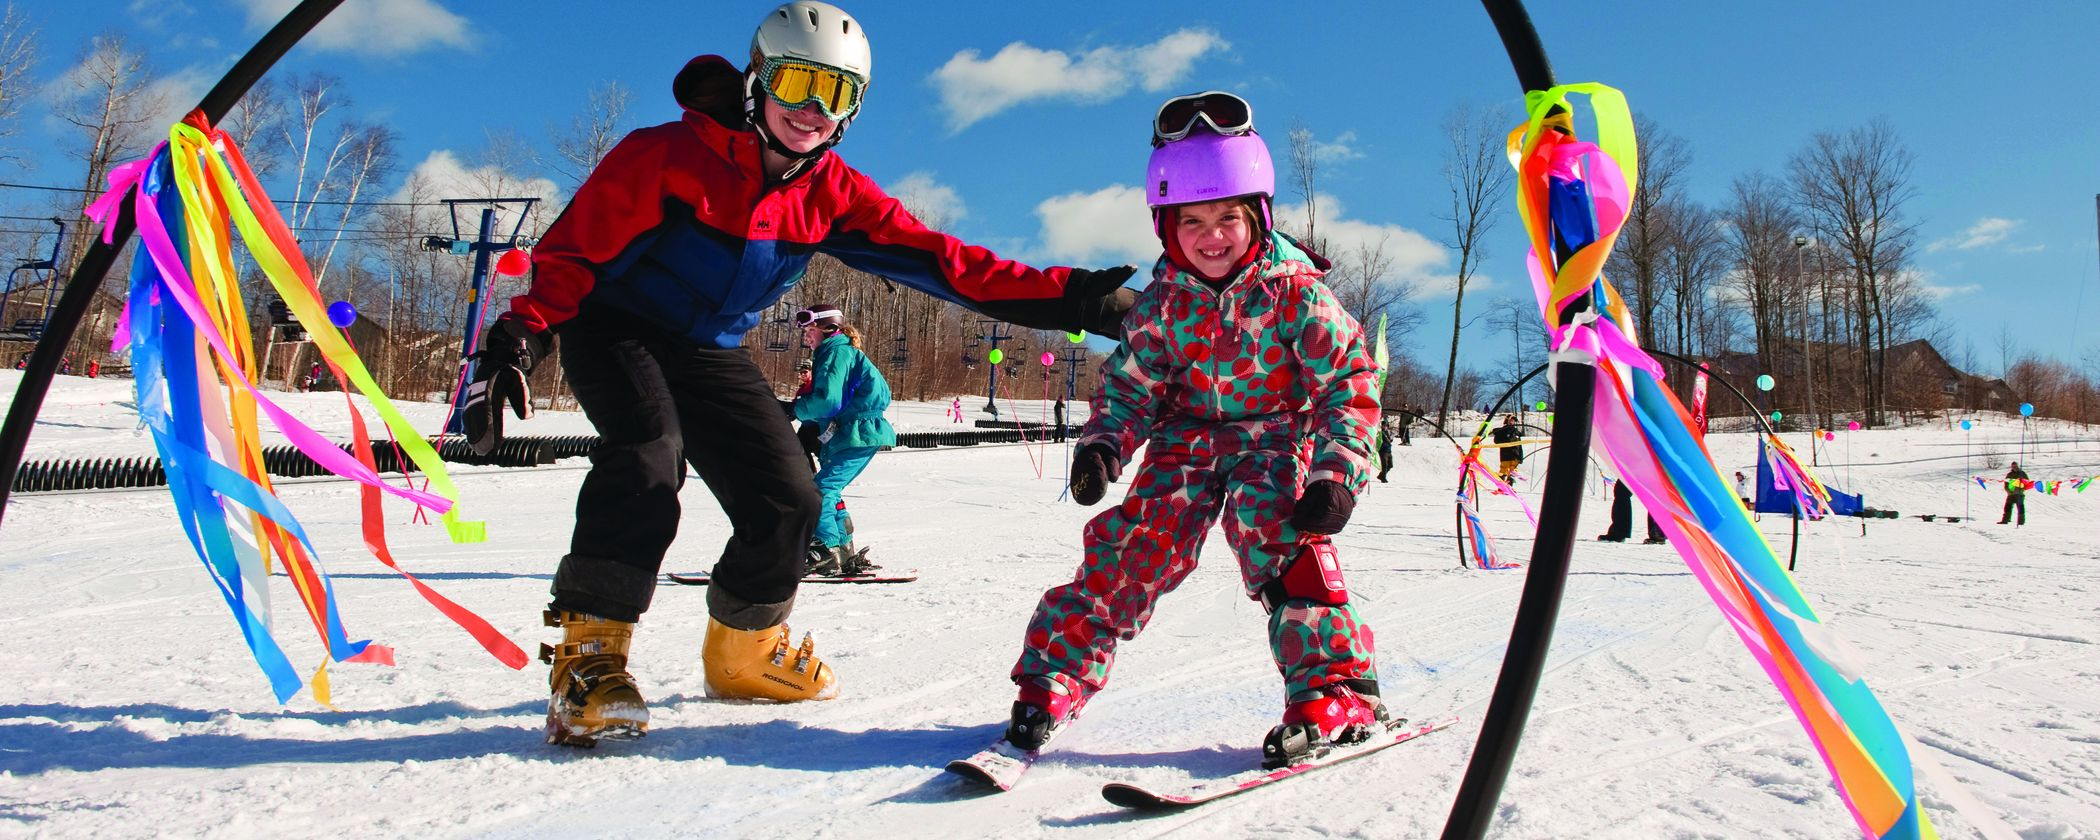 Ski Vermont Discounts And Special Offers At Vermont Ski Resorts